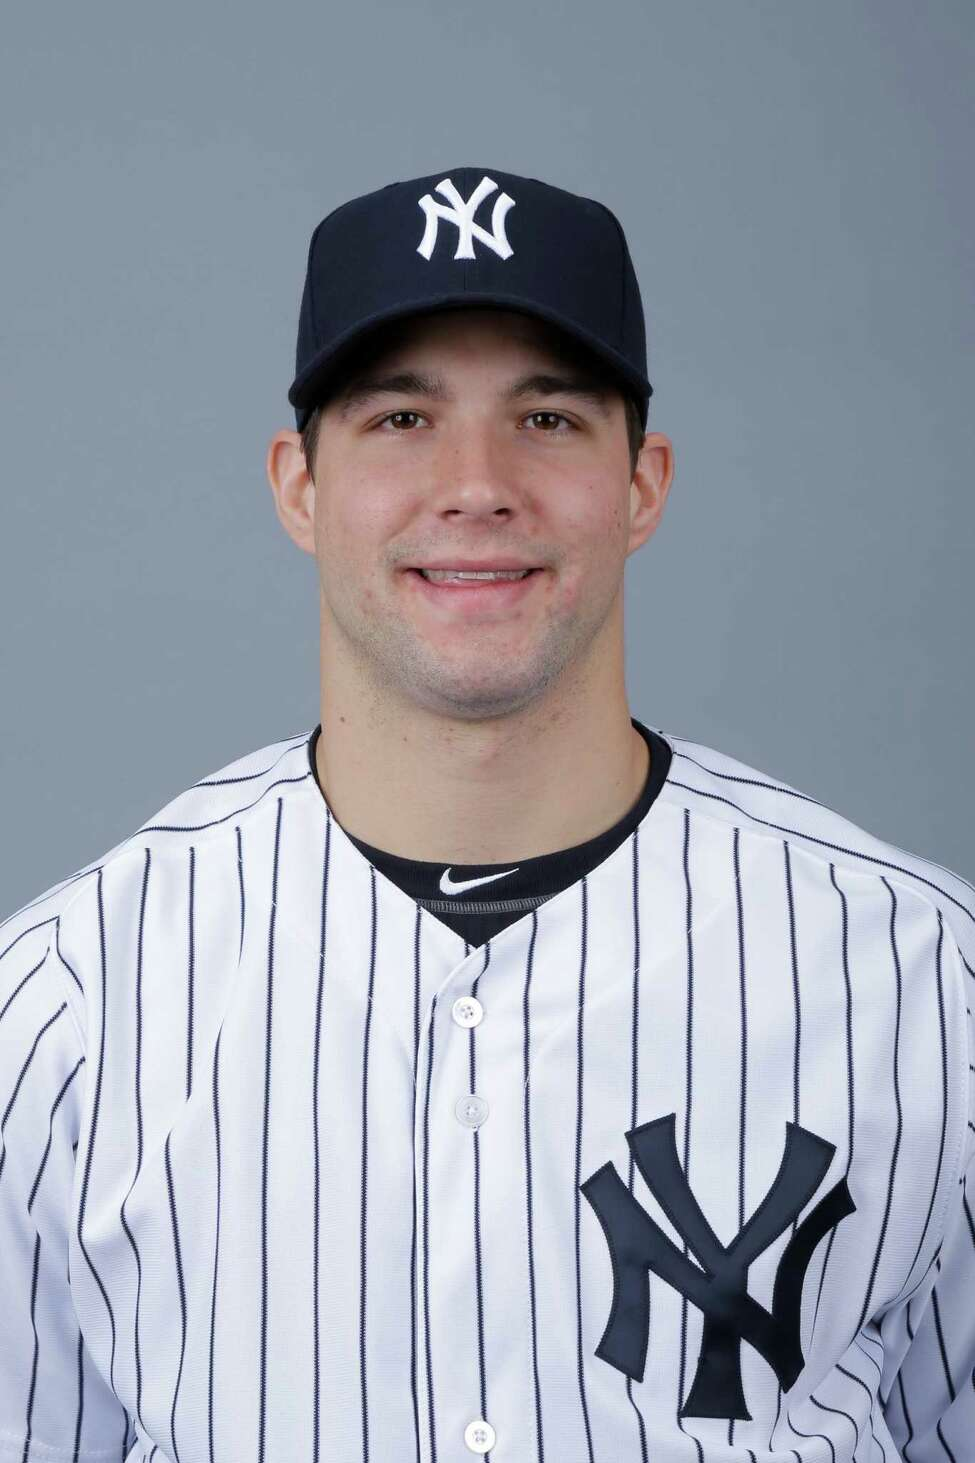 This is a 2013 photo of Tom Kahnle of the New York Yankees baseball team. This image reflects the Yankees' spring training roster as of Wednesday, Feb. 20, 2013, when this image was taken. (AP Photo/Matt Slocum)